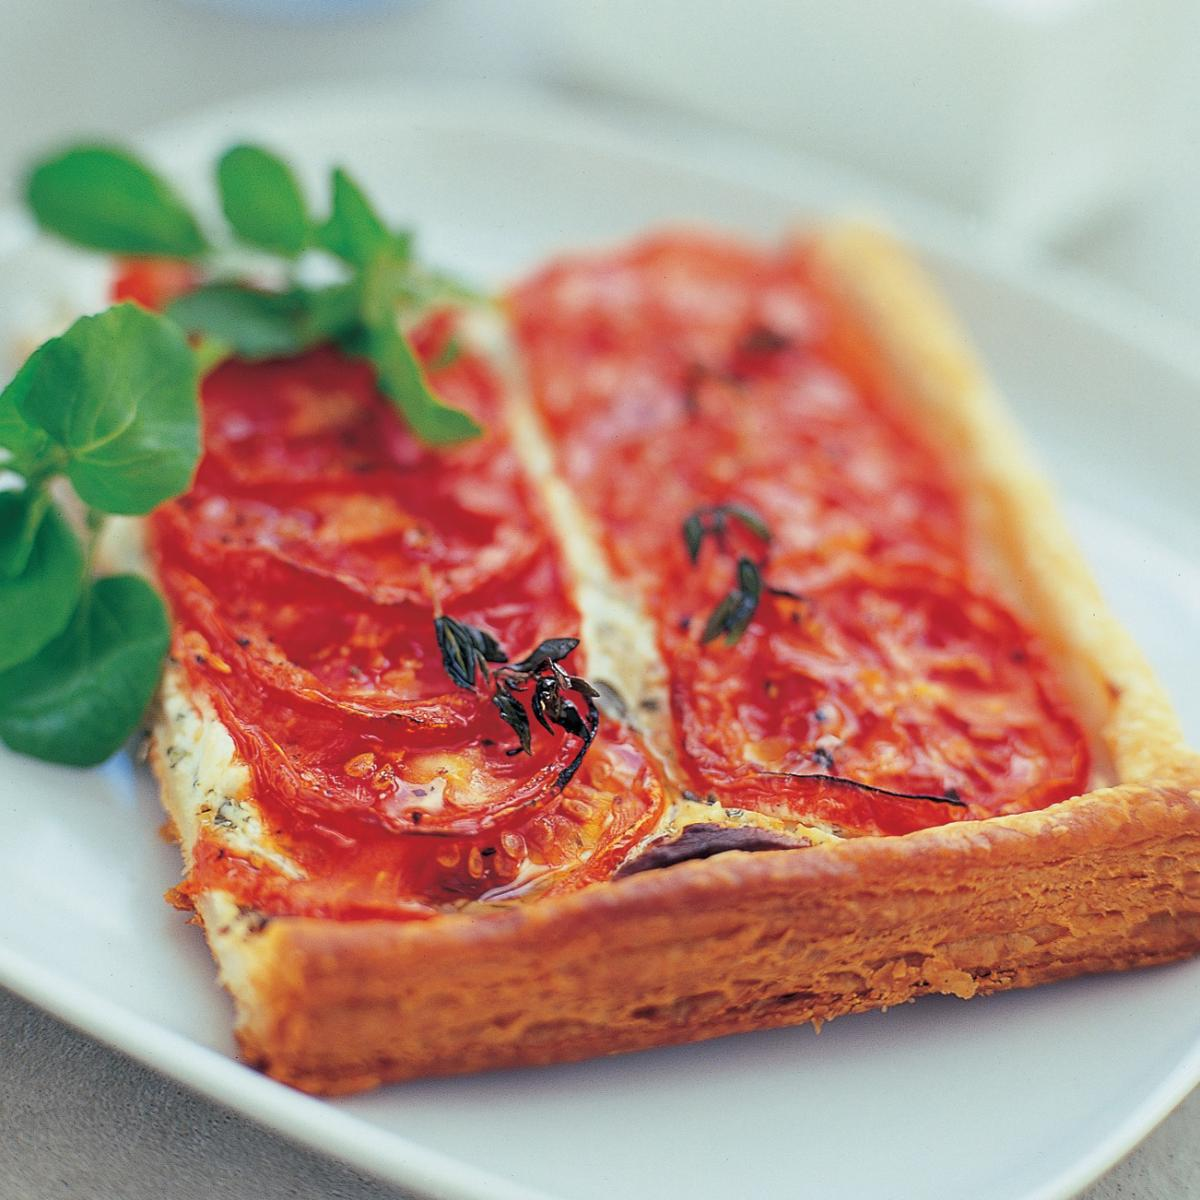 A picture of Delia's Roasted Tomato and Goats' Cheese Tart with Thyme recipe